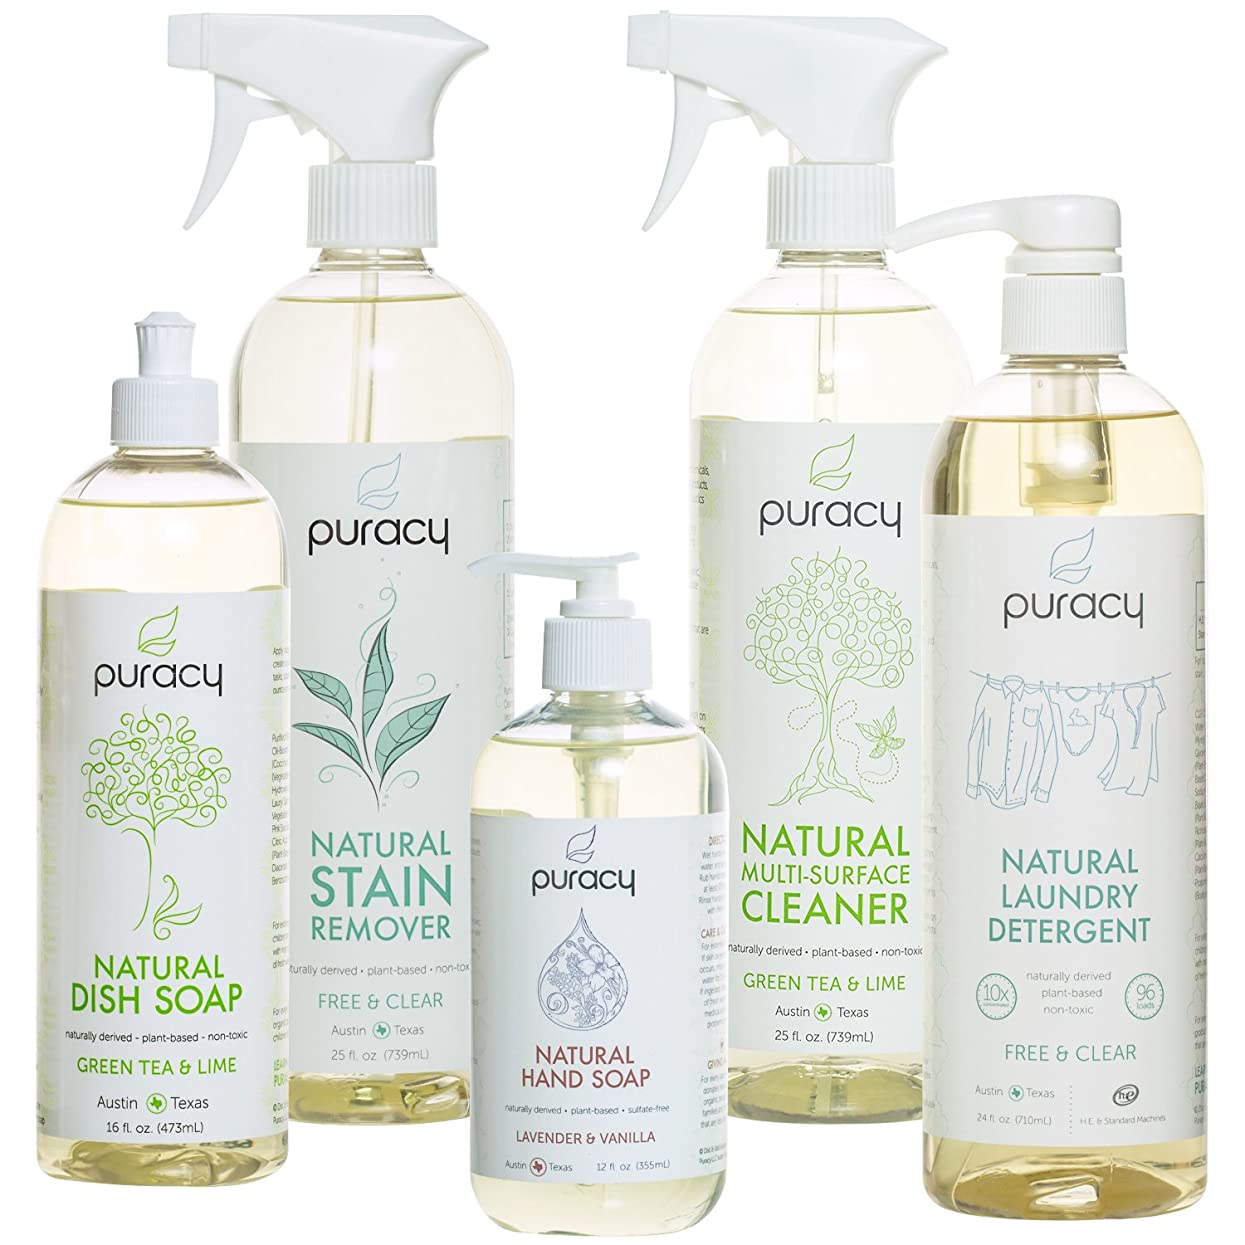 切り下げ補正本当のことを言うとPuracy Natural Home Cleaning Essentials Set - Hand Soap, Dish Soap, Laundry Detergent, Multi-Surface Cleaner, Laundry Stain Remover Bundle - Pack of 5 by Puracy